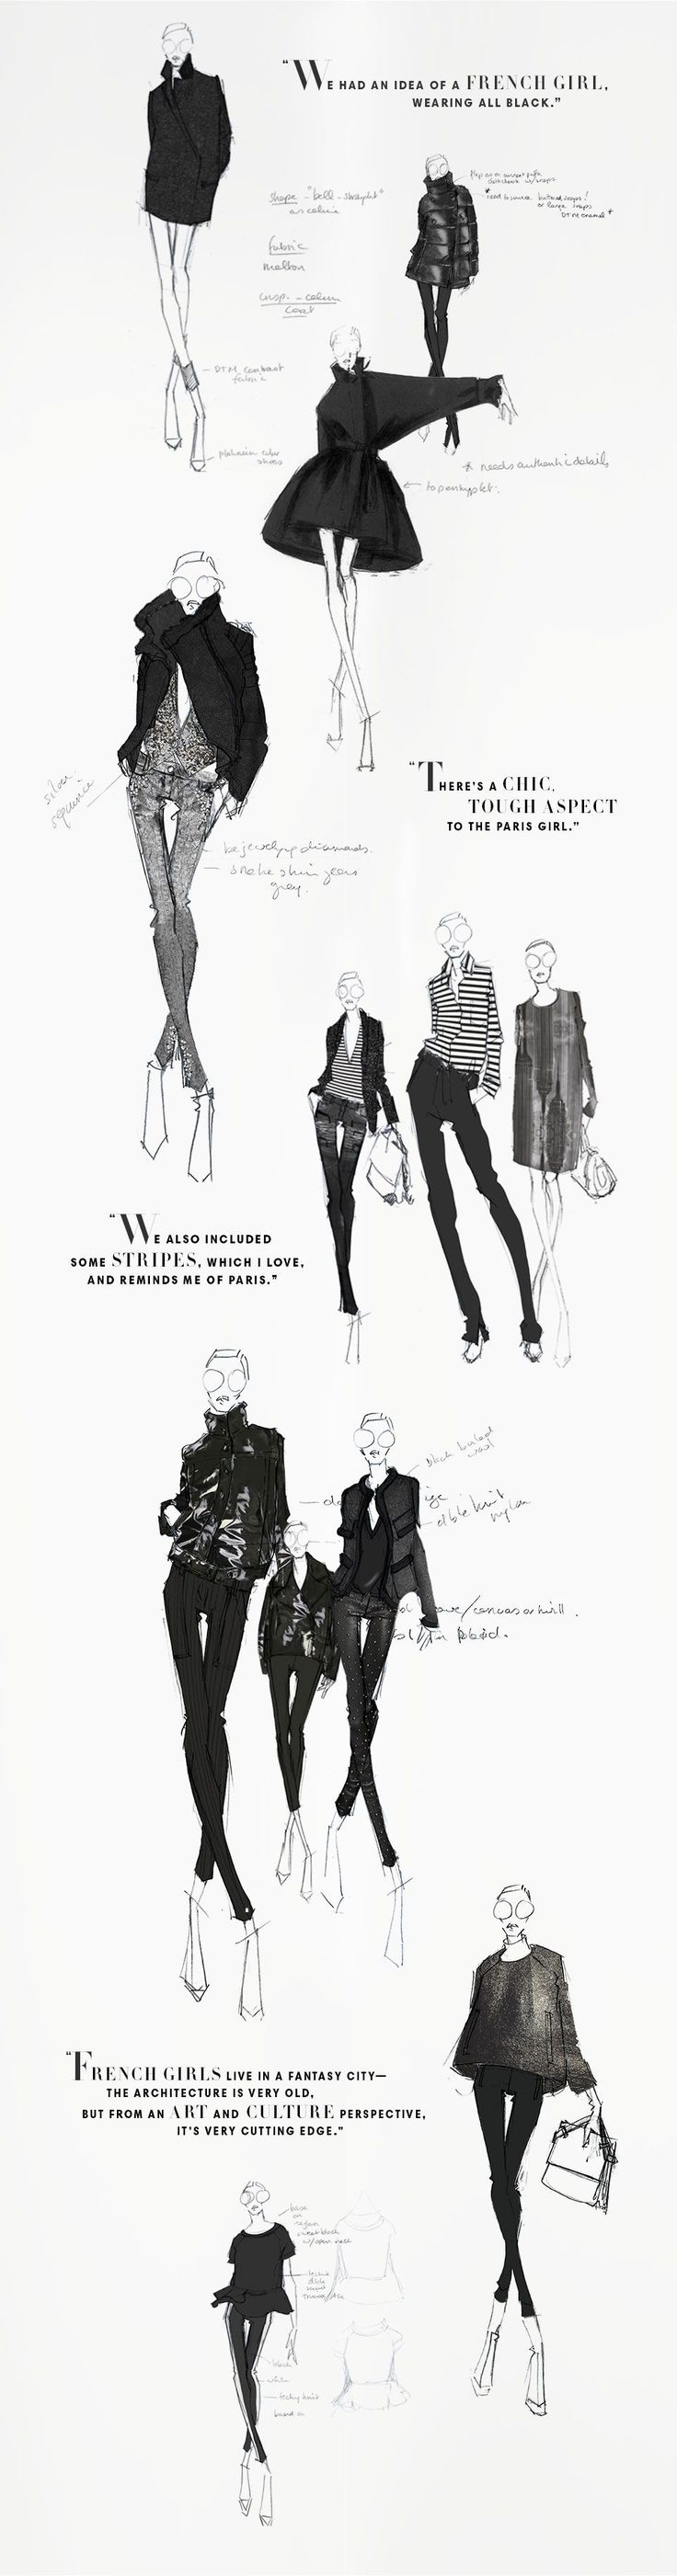 Beautiful sketches from the Joe Fresh sketchbook - Winter 2013. JOEFRESH.COM #FashionSketches